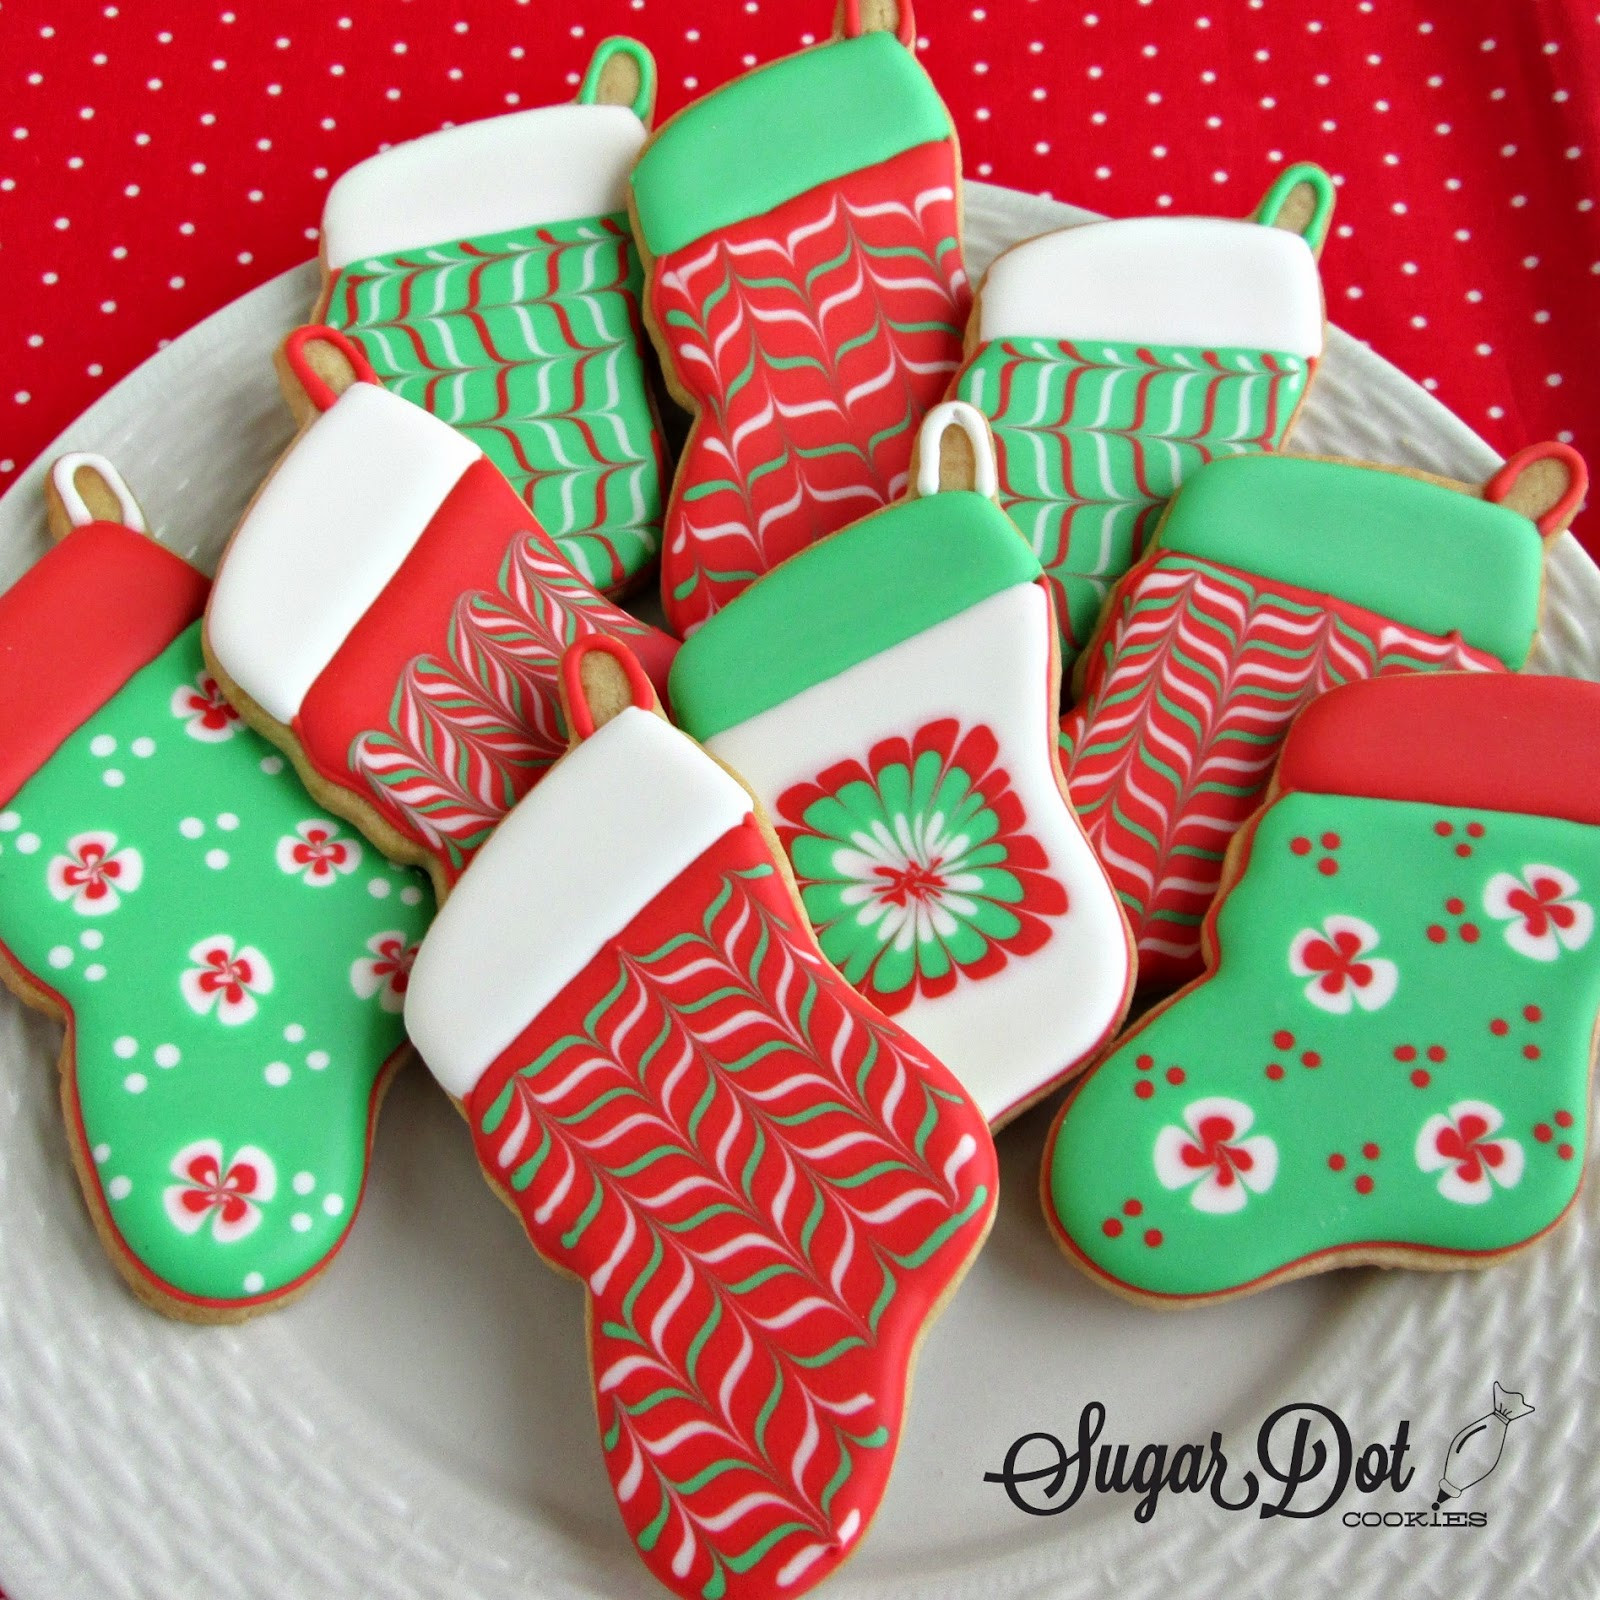 Iced Christmas Cookies  Christmas Trees sprinkles decorated snow covered A